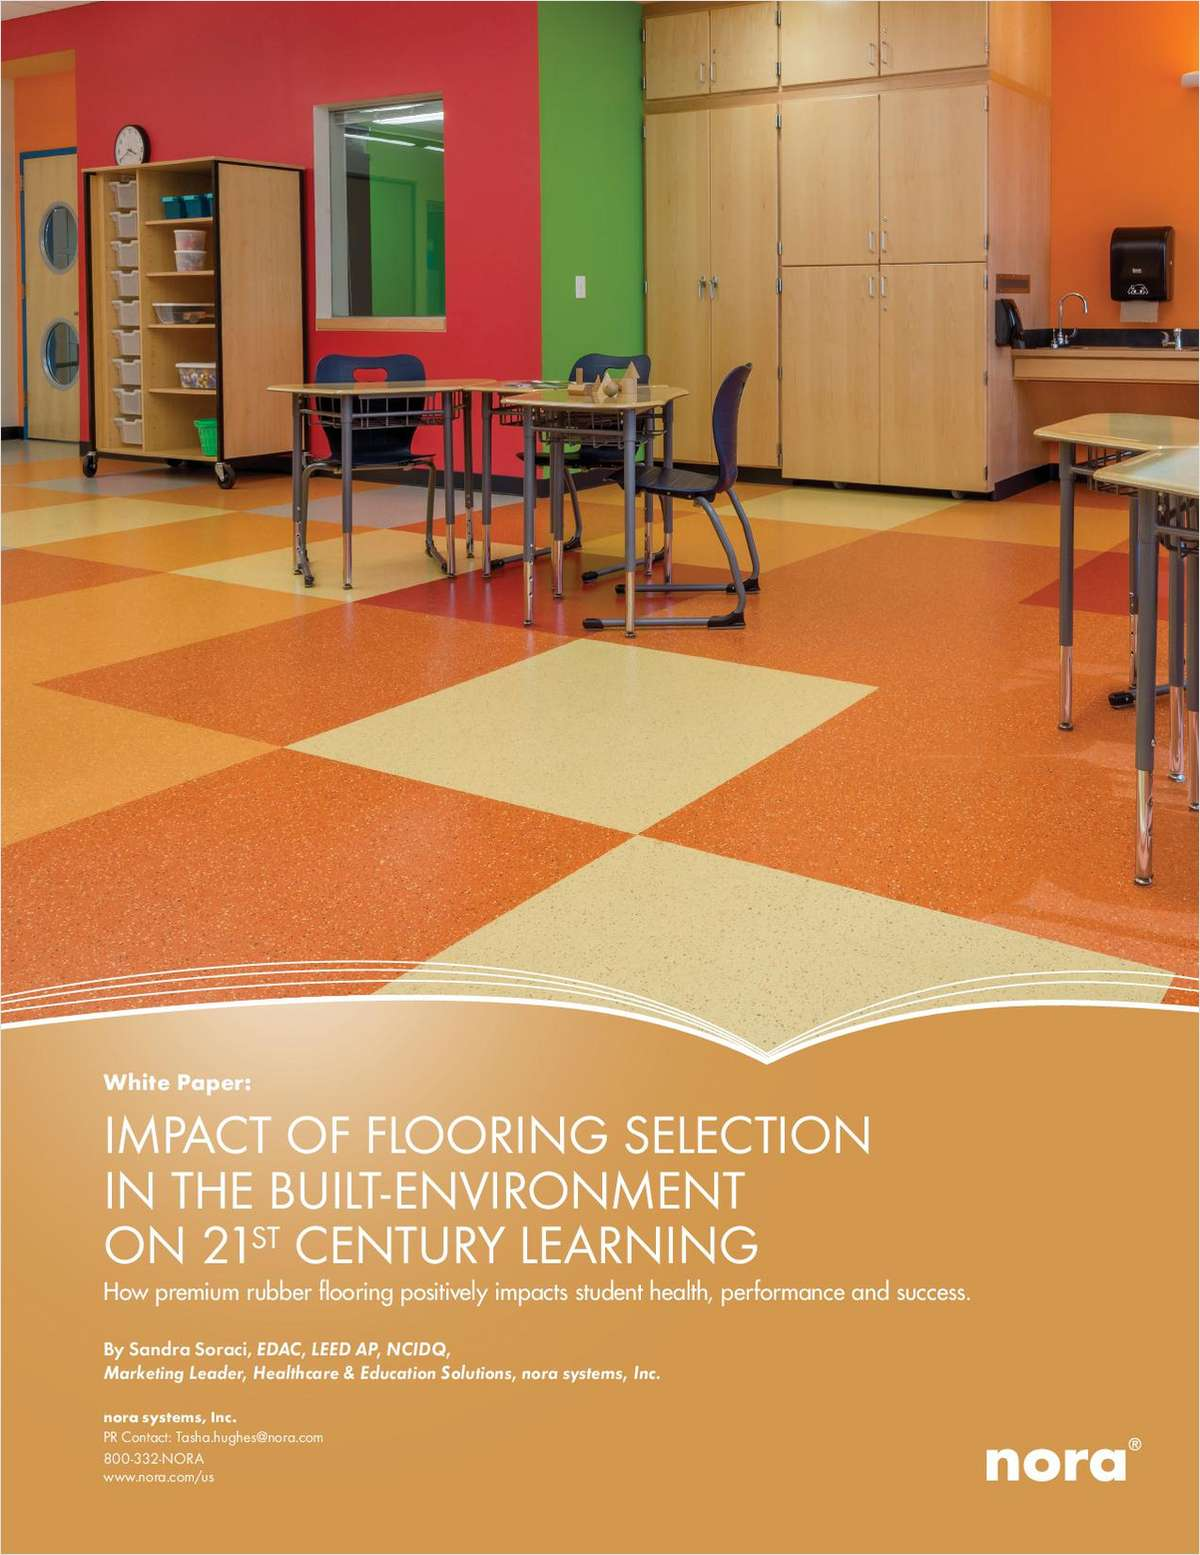 Safer Spaces for Student Success